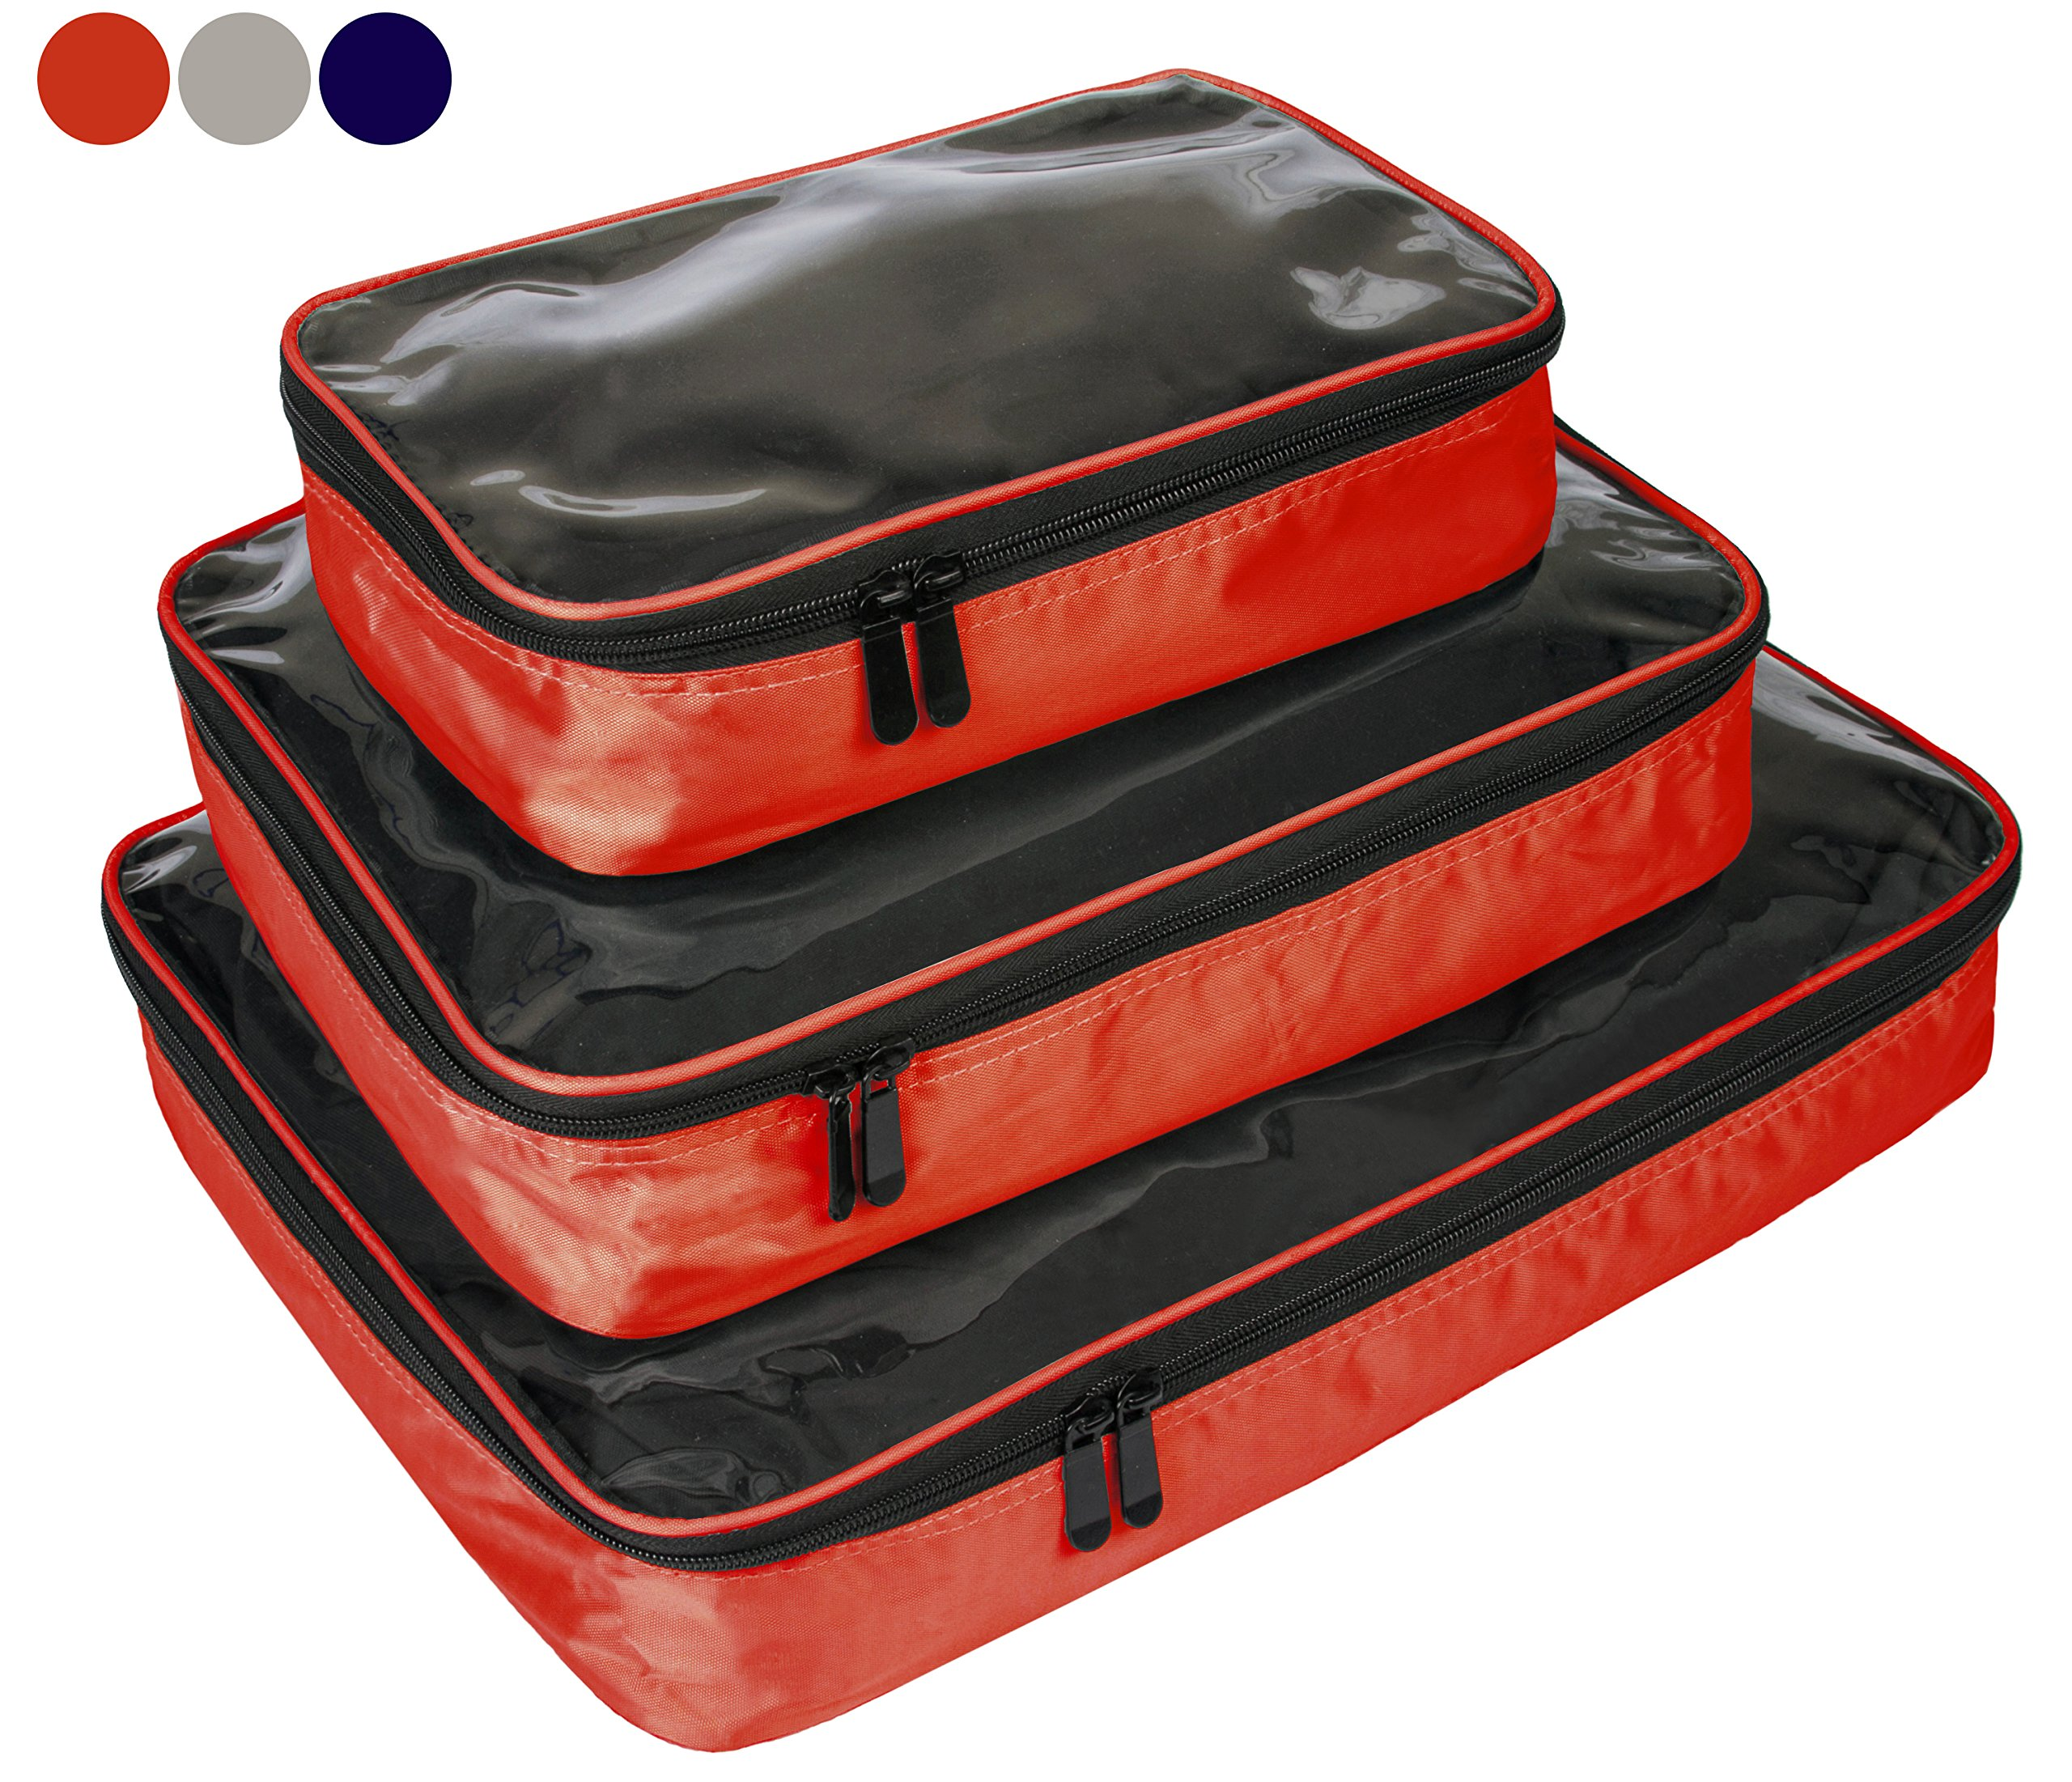 Observ Clear Packing Cubes, Red - Premium, High Strength 3 Piece Travel Organizer Set